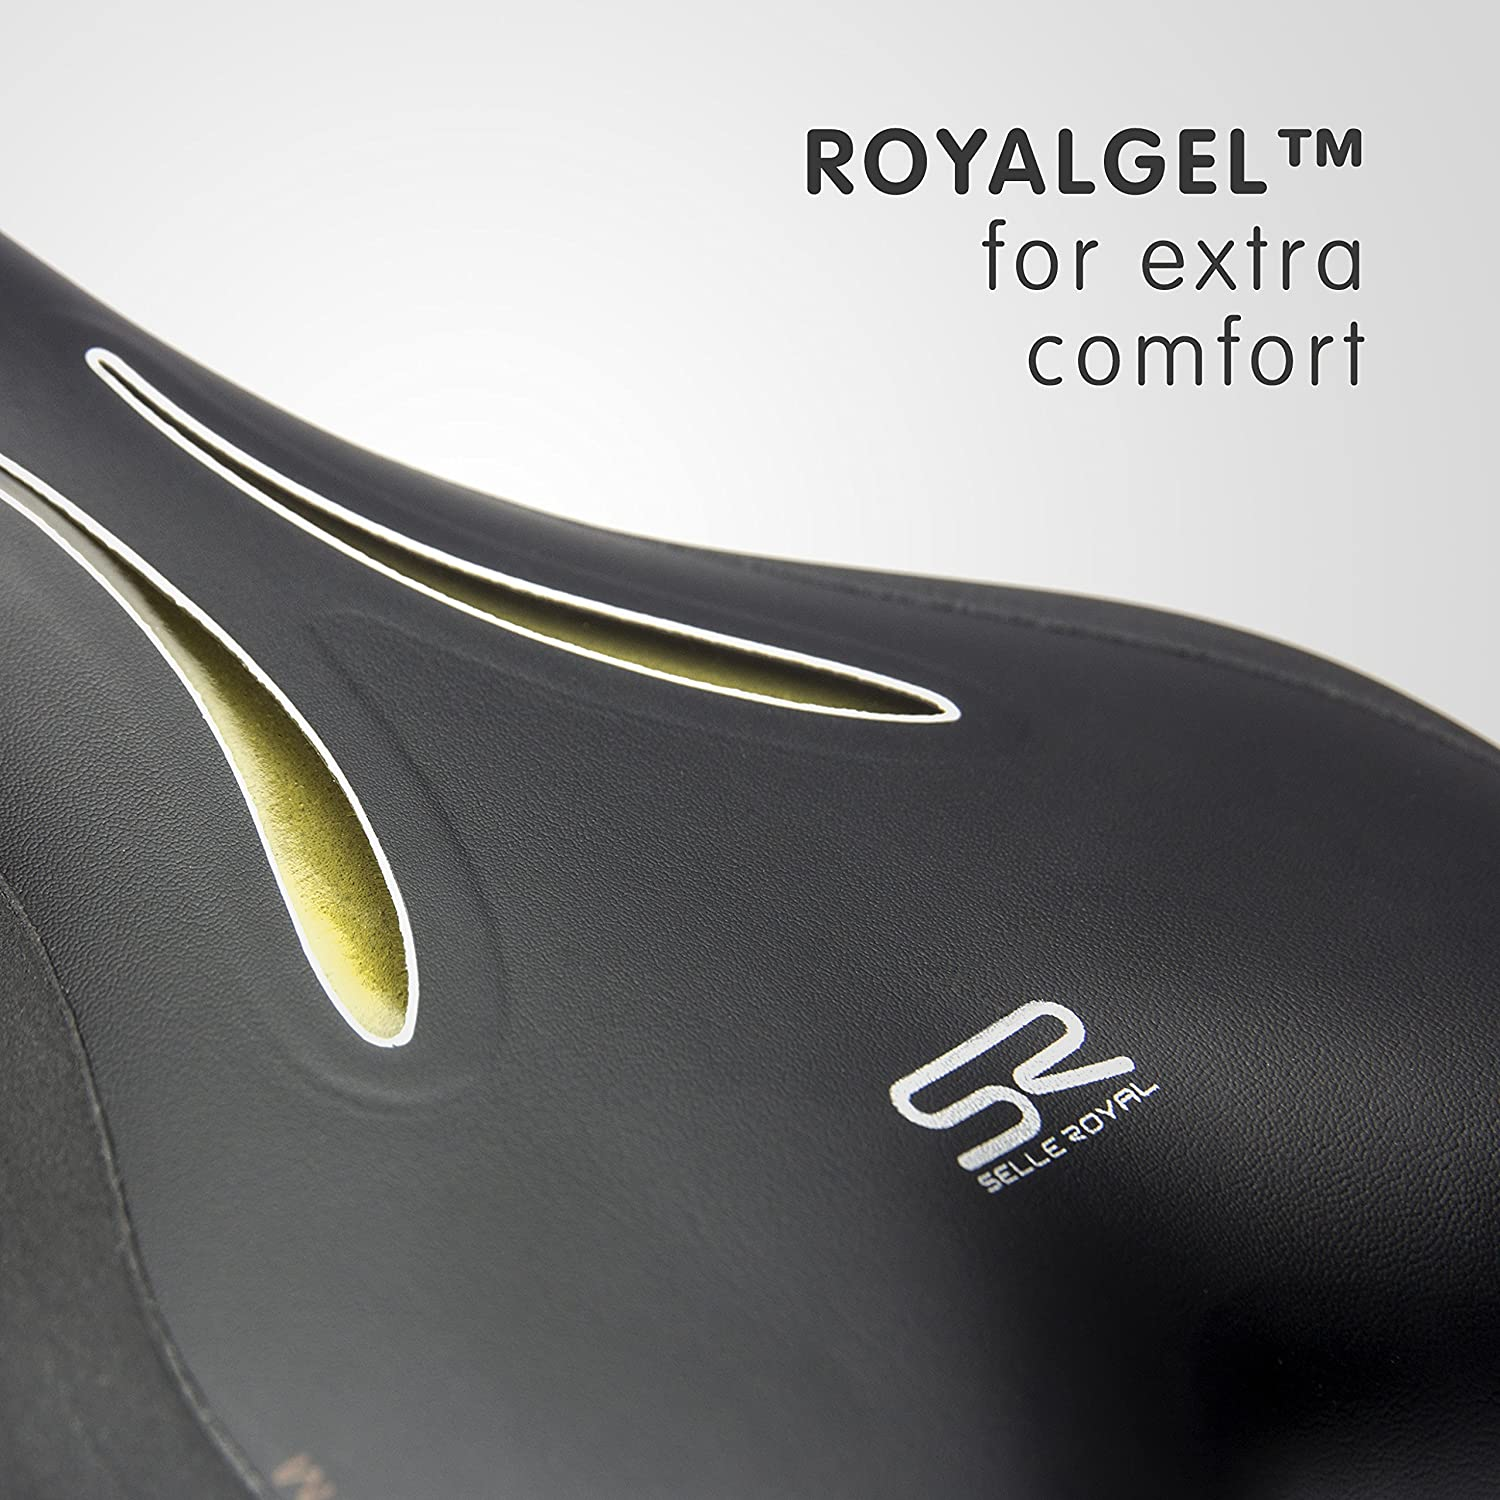 Selle Royal Mano Comfort Grips 60 Degree Moderate Lock On